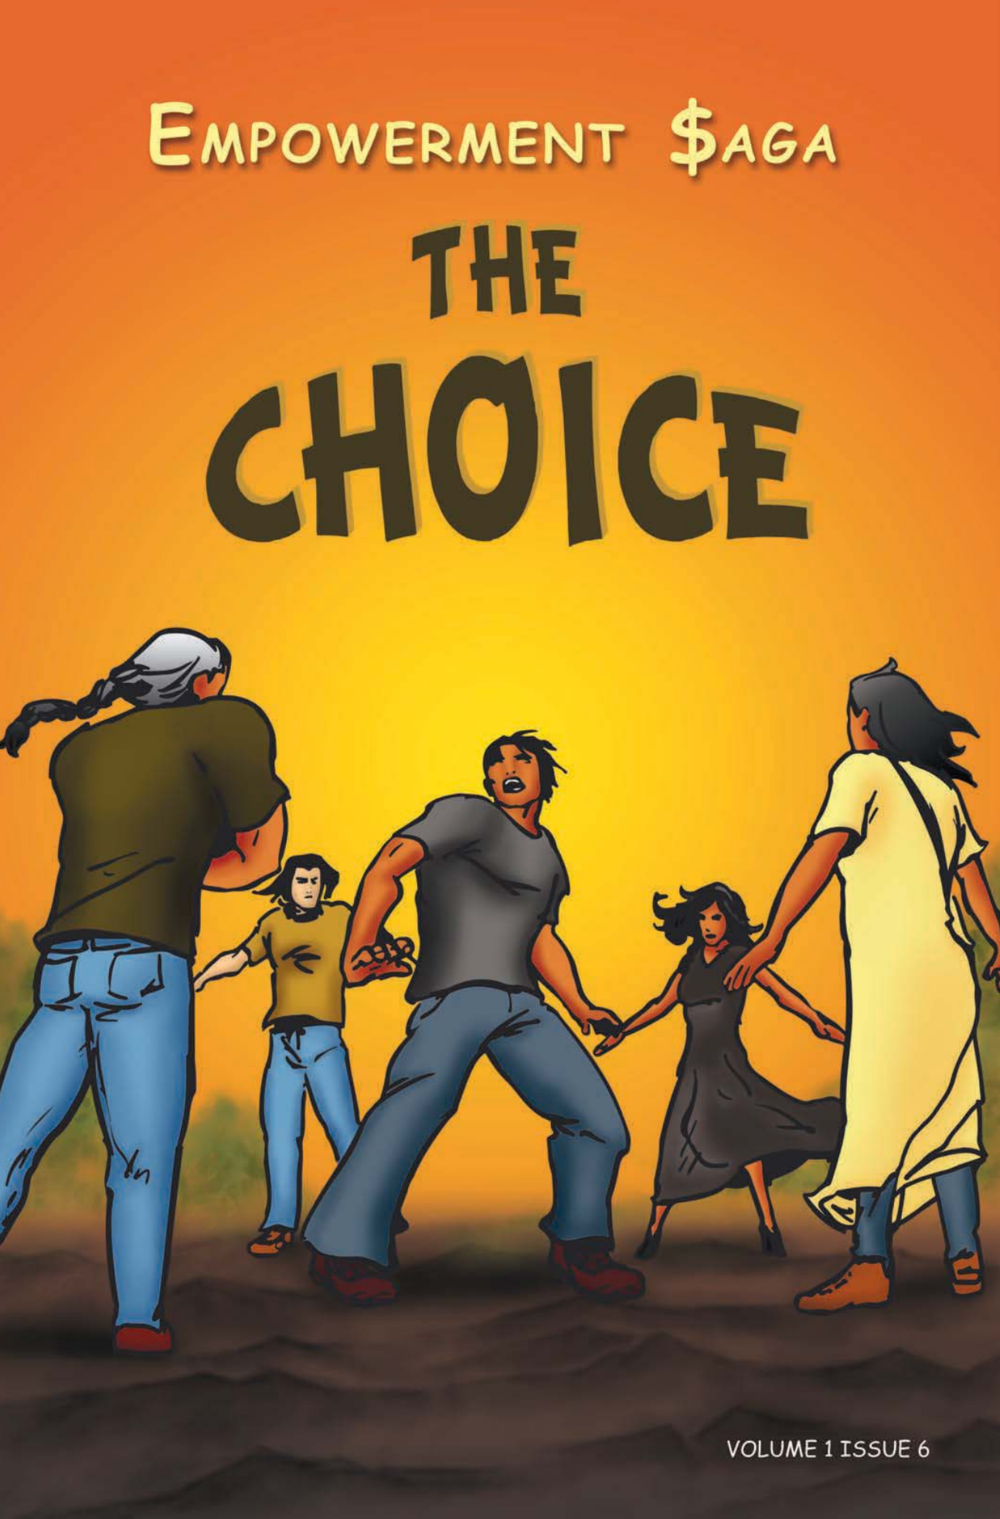 Book 6: The Choice